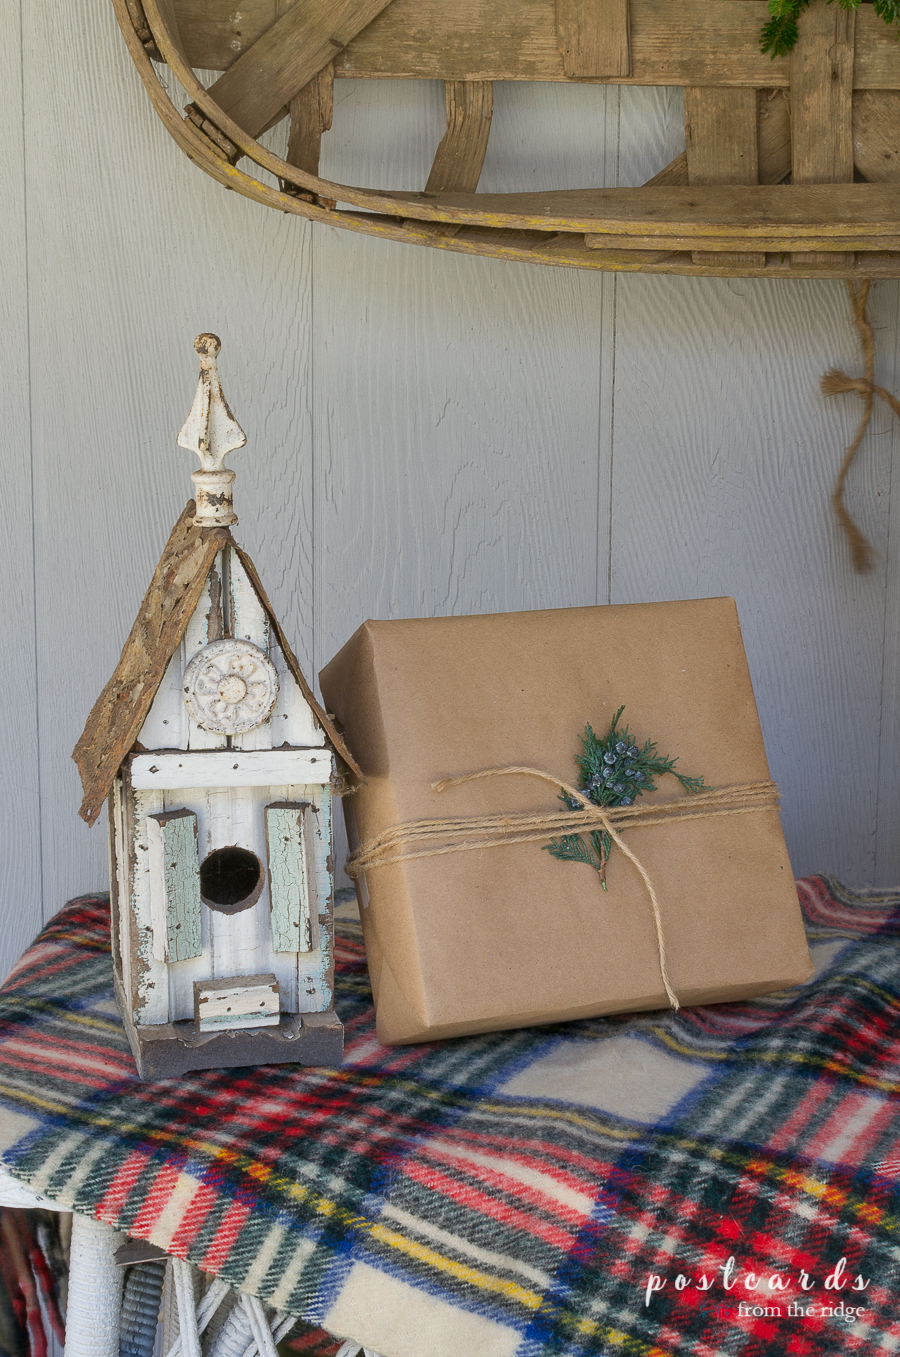 rustic vintage birdhouse on plaid blanket